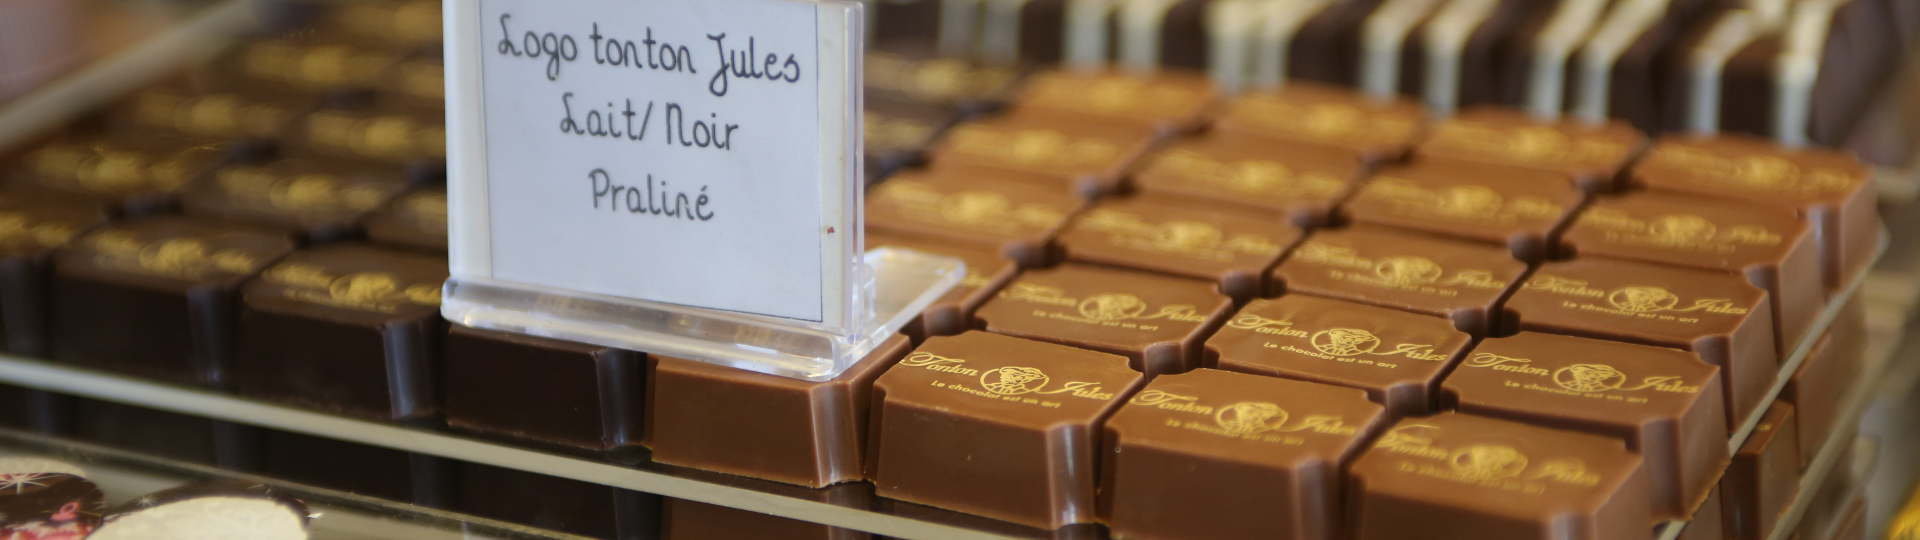 french touch gastronomy Tonton Jules' Chocolate New Caledonia